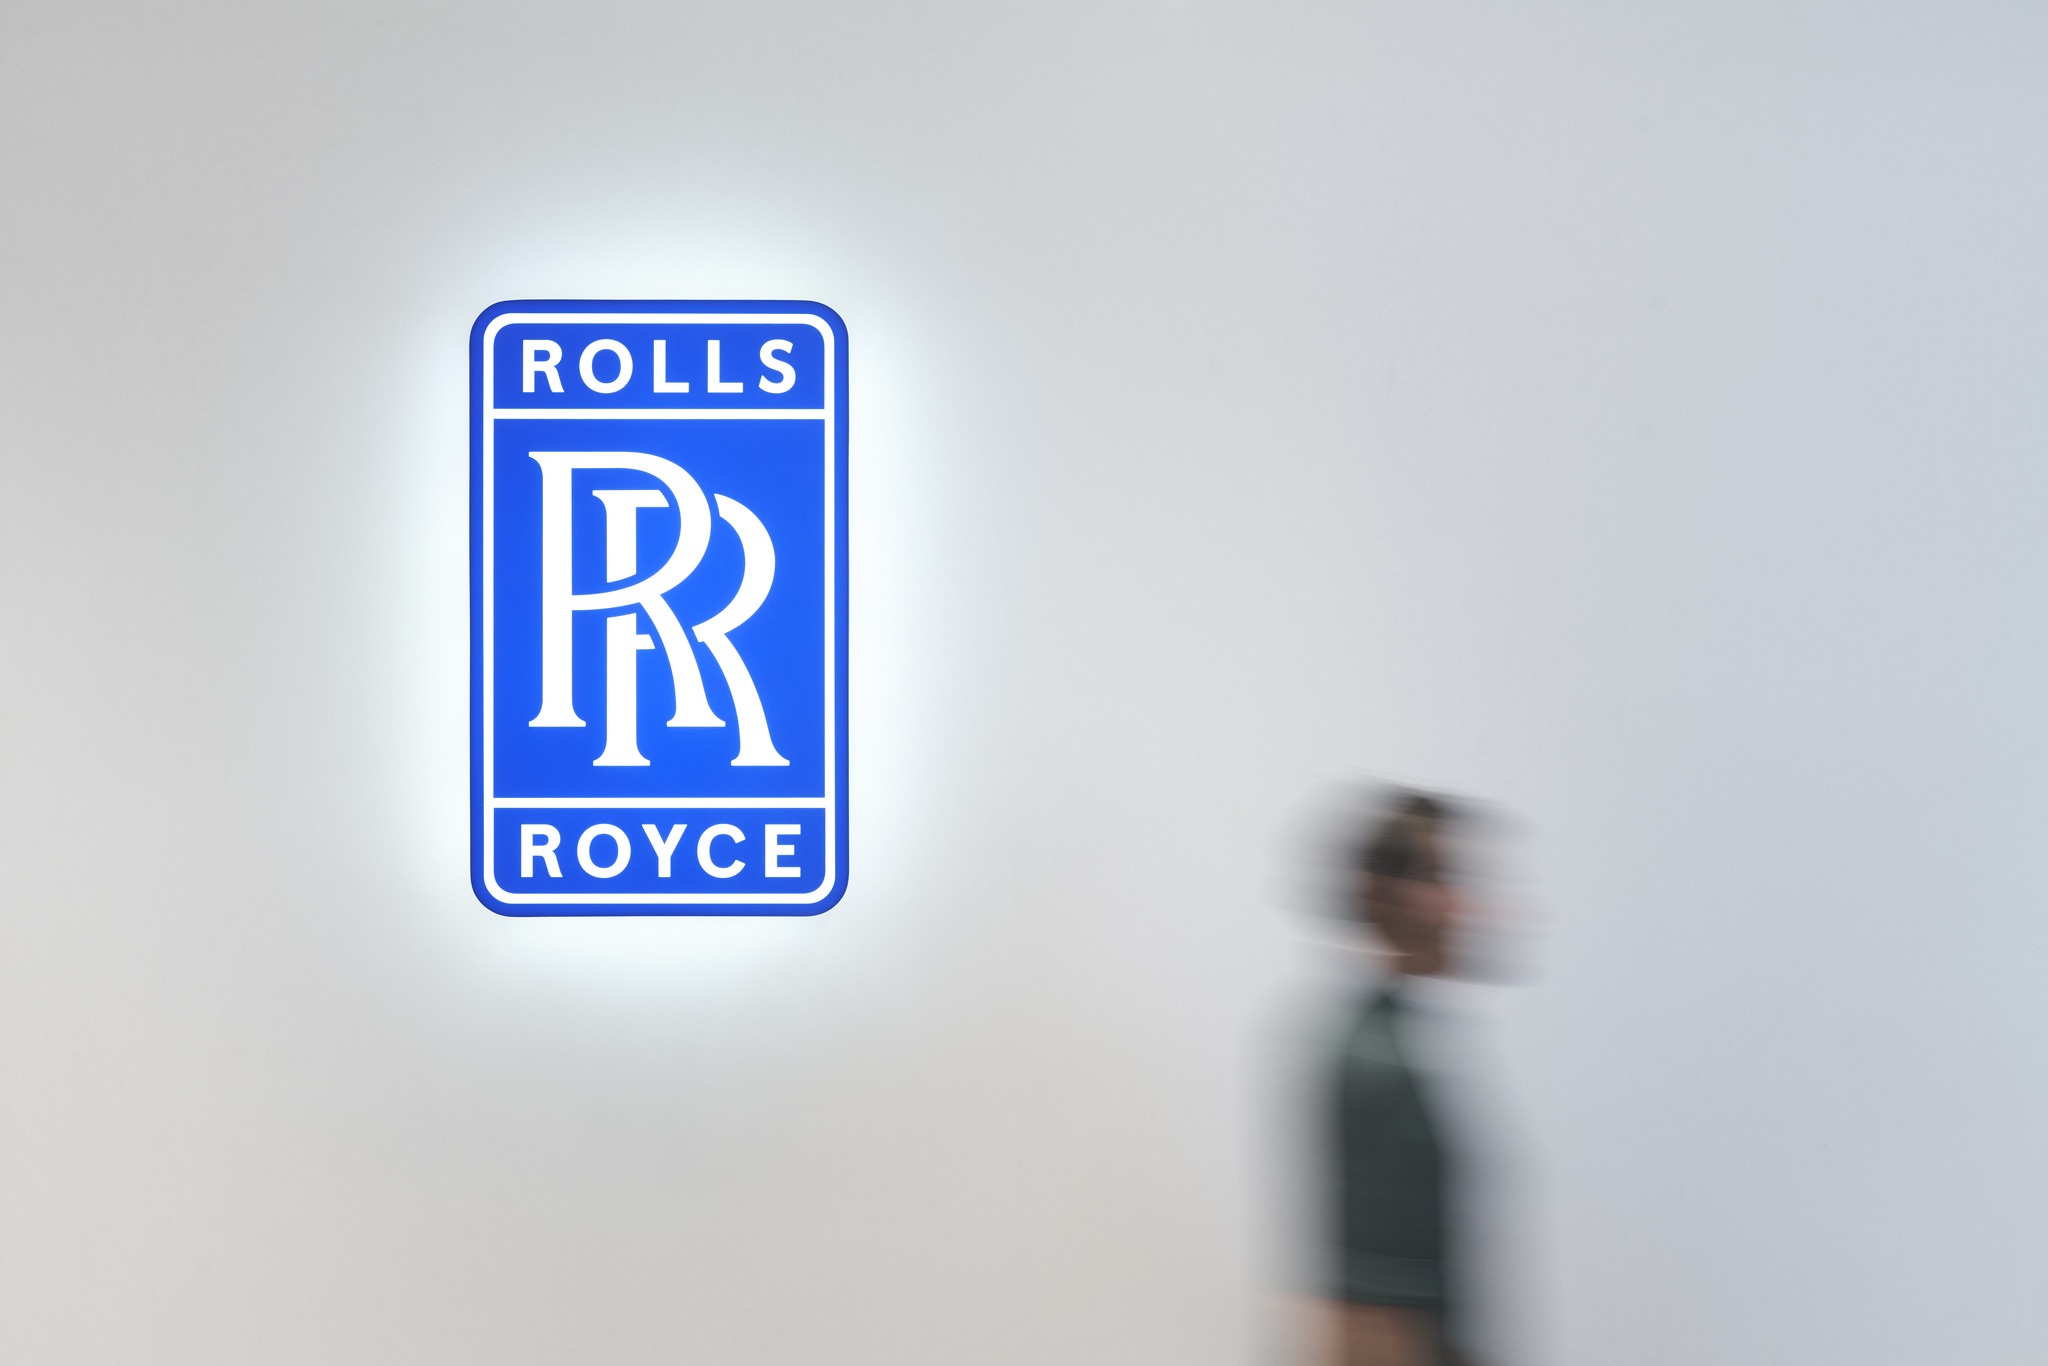 Rolls-Royce opts for 'reasonable' approach as crisis hits MRO customers